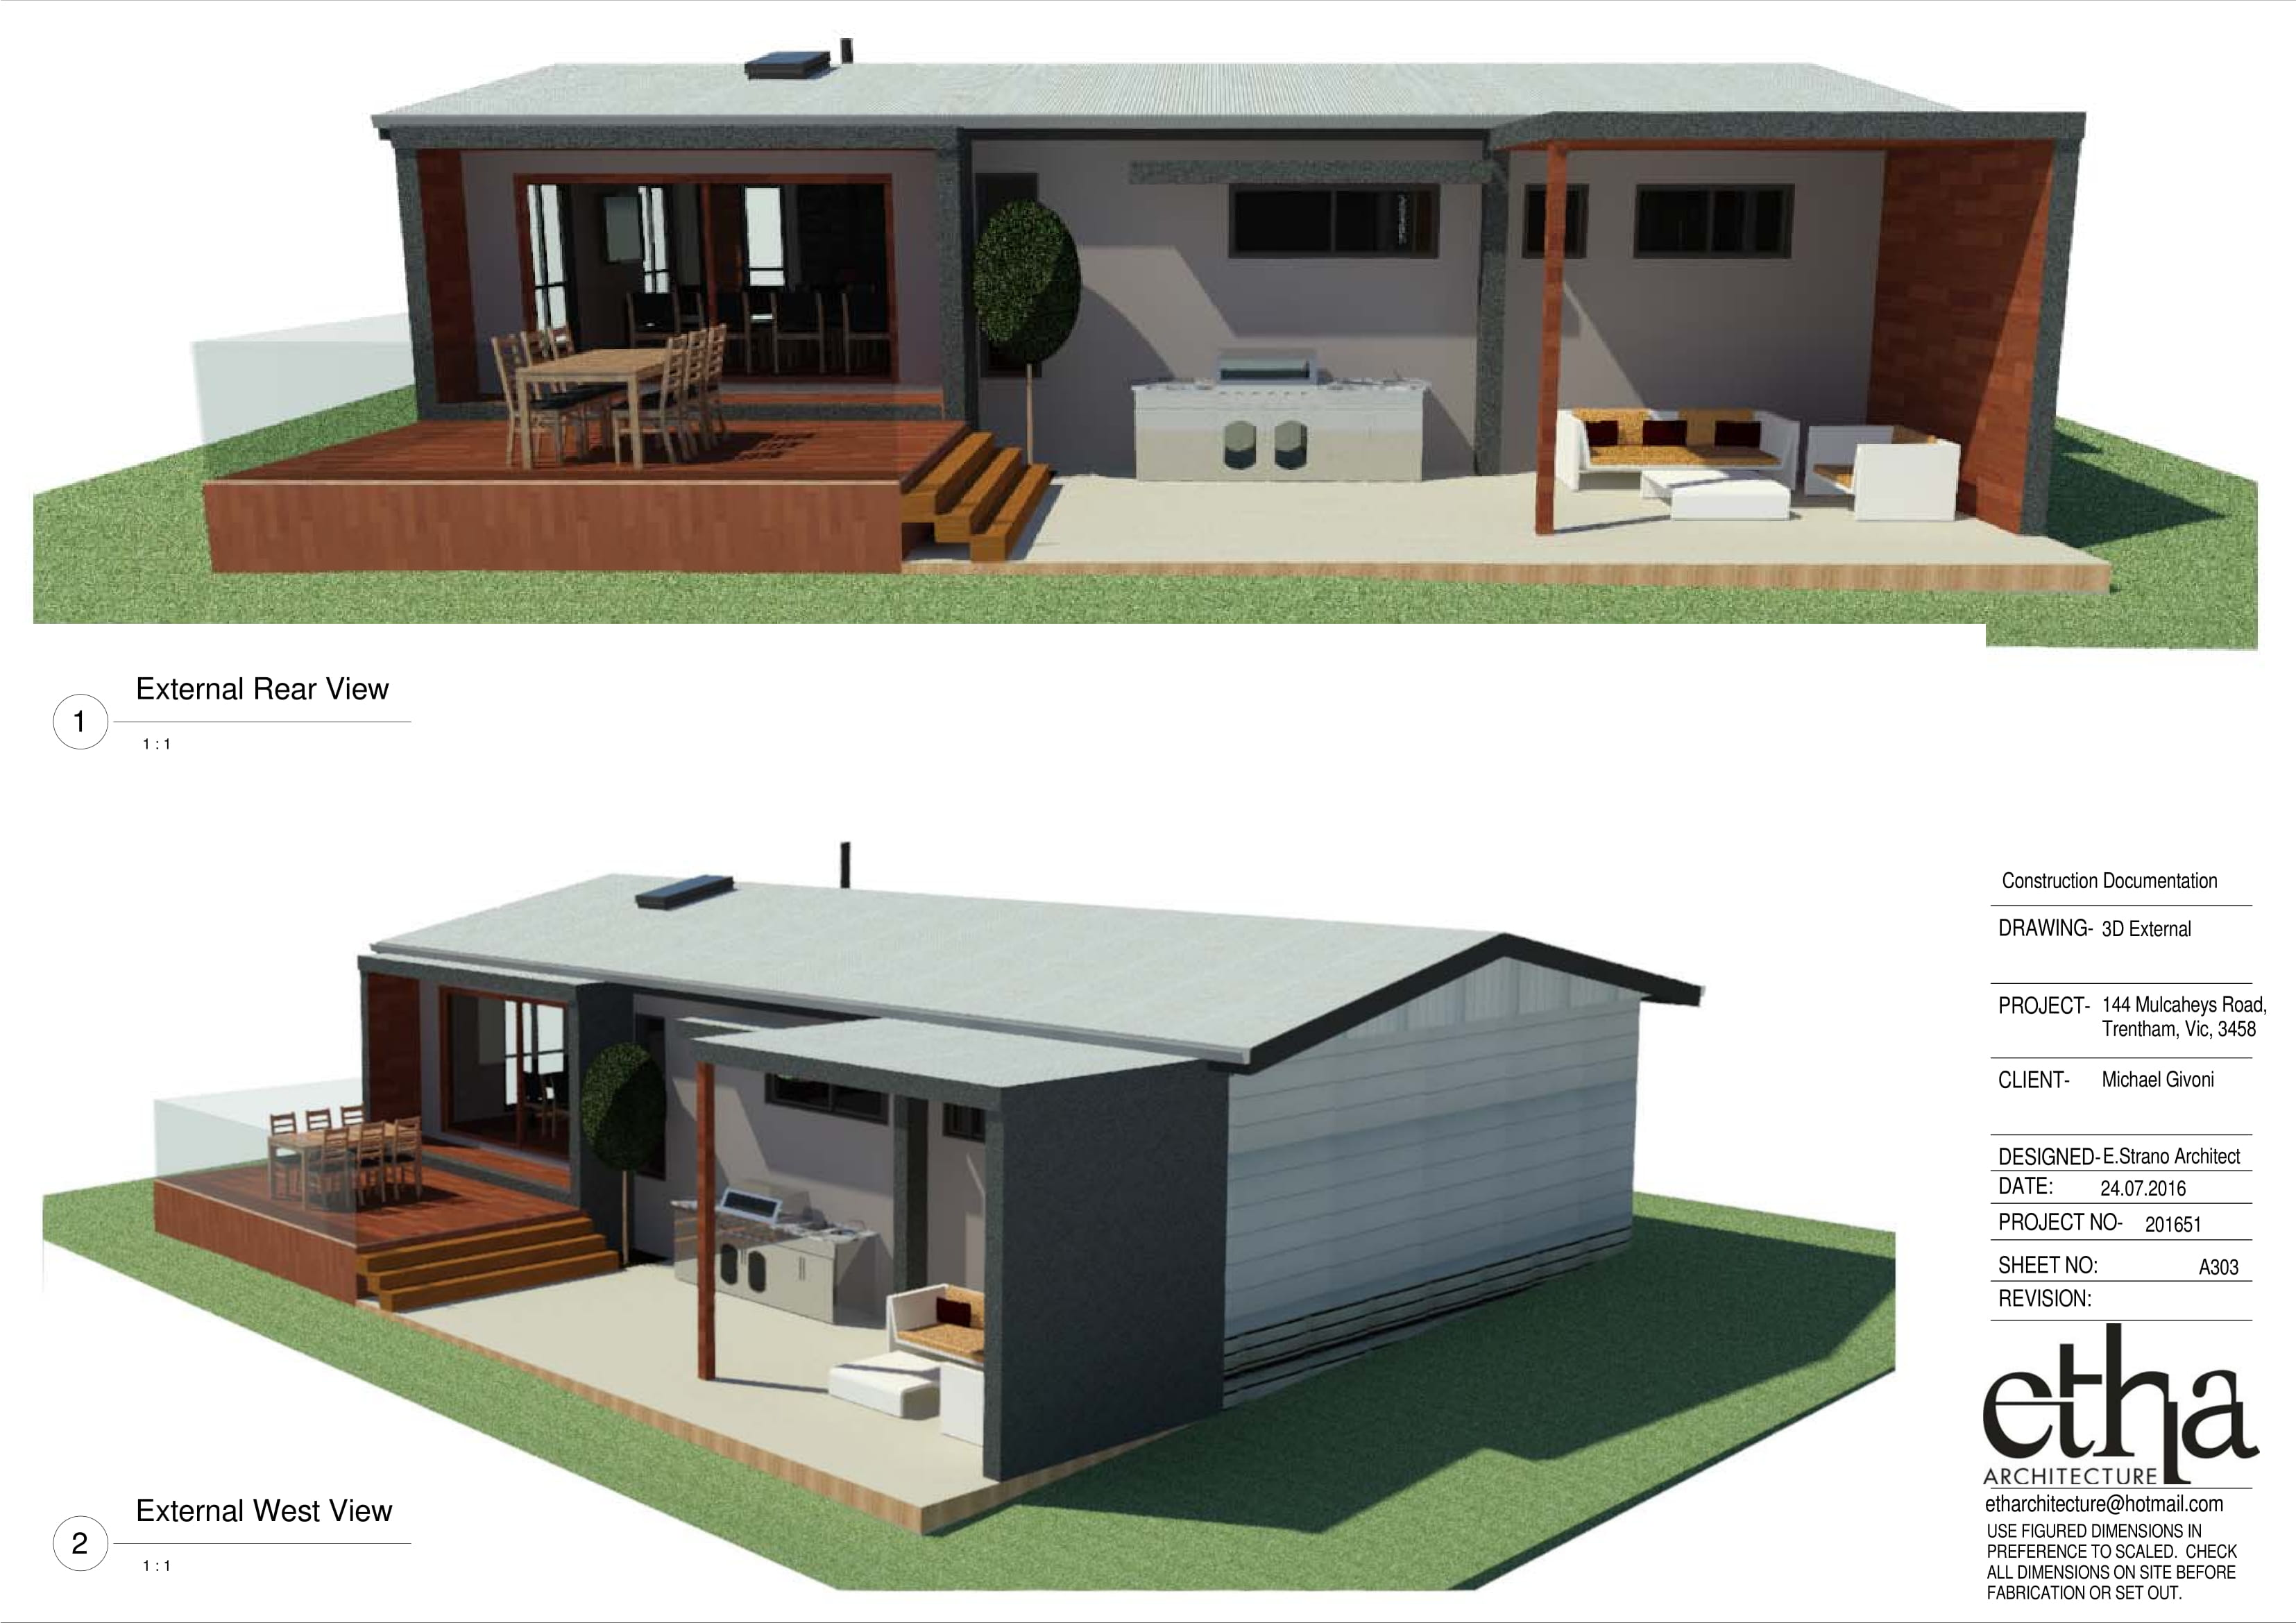 Cost Estimating Services for 144 Mulcahys Road Trentham Victoria.